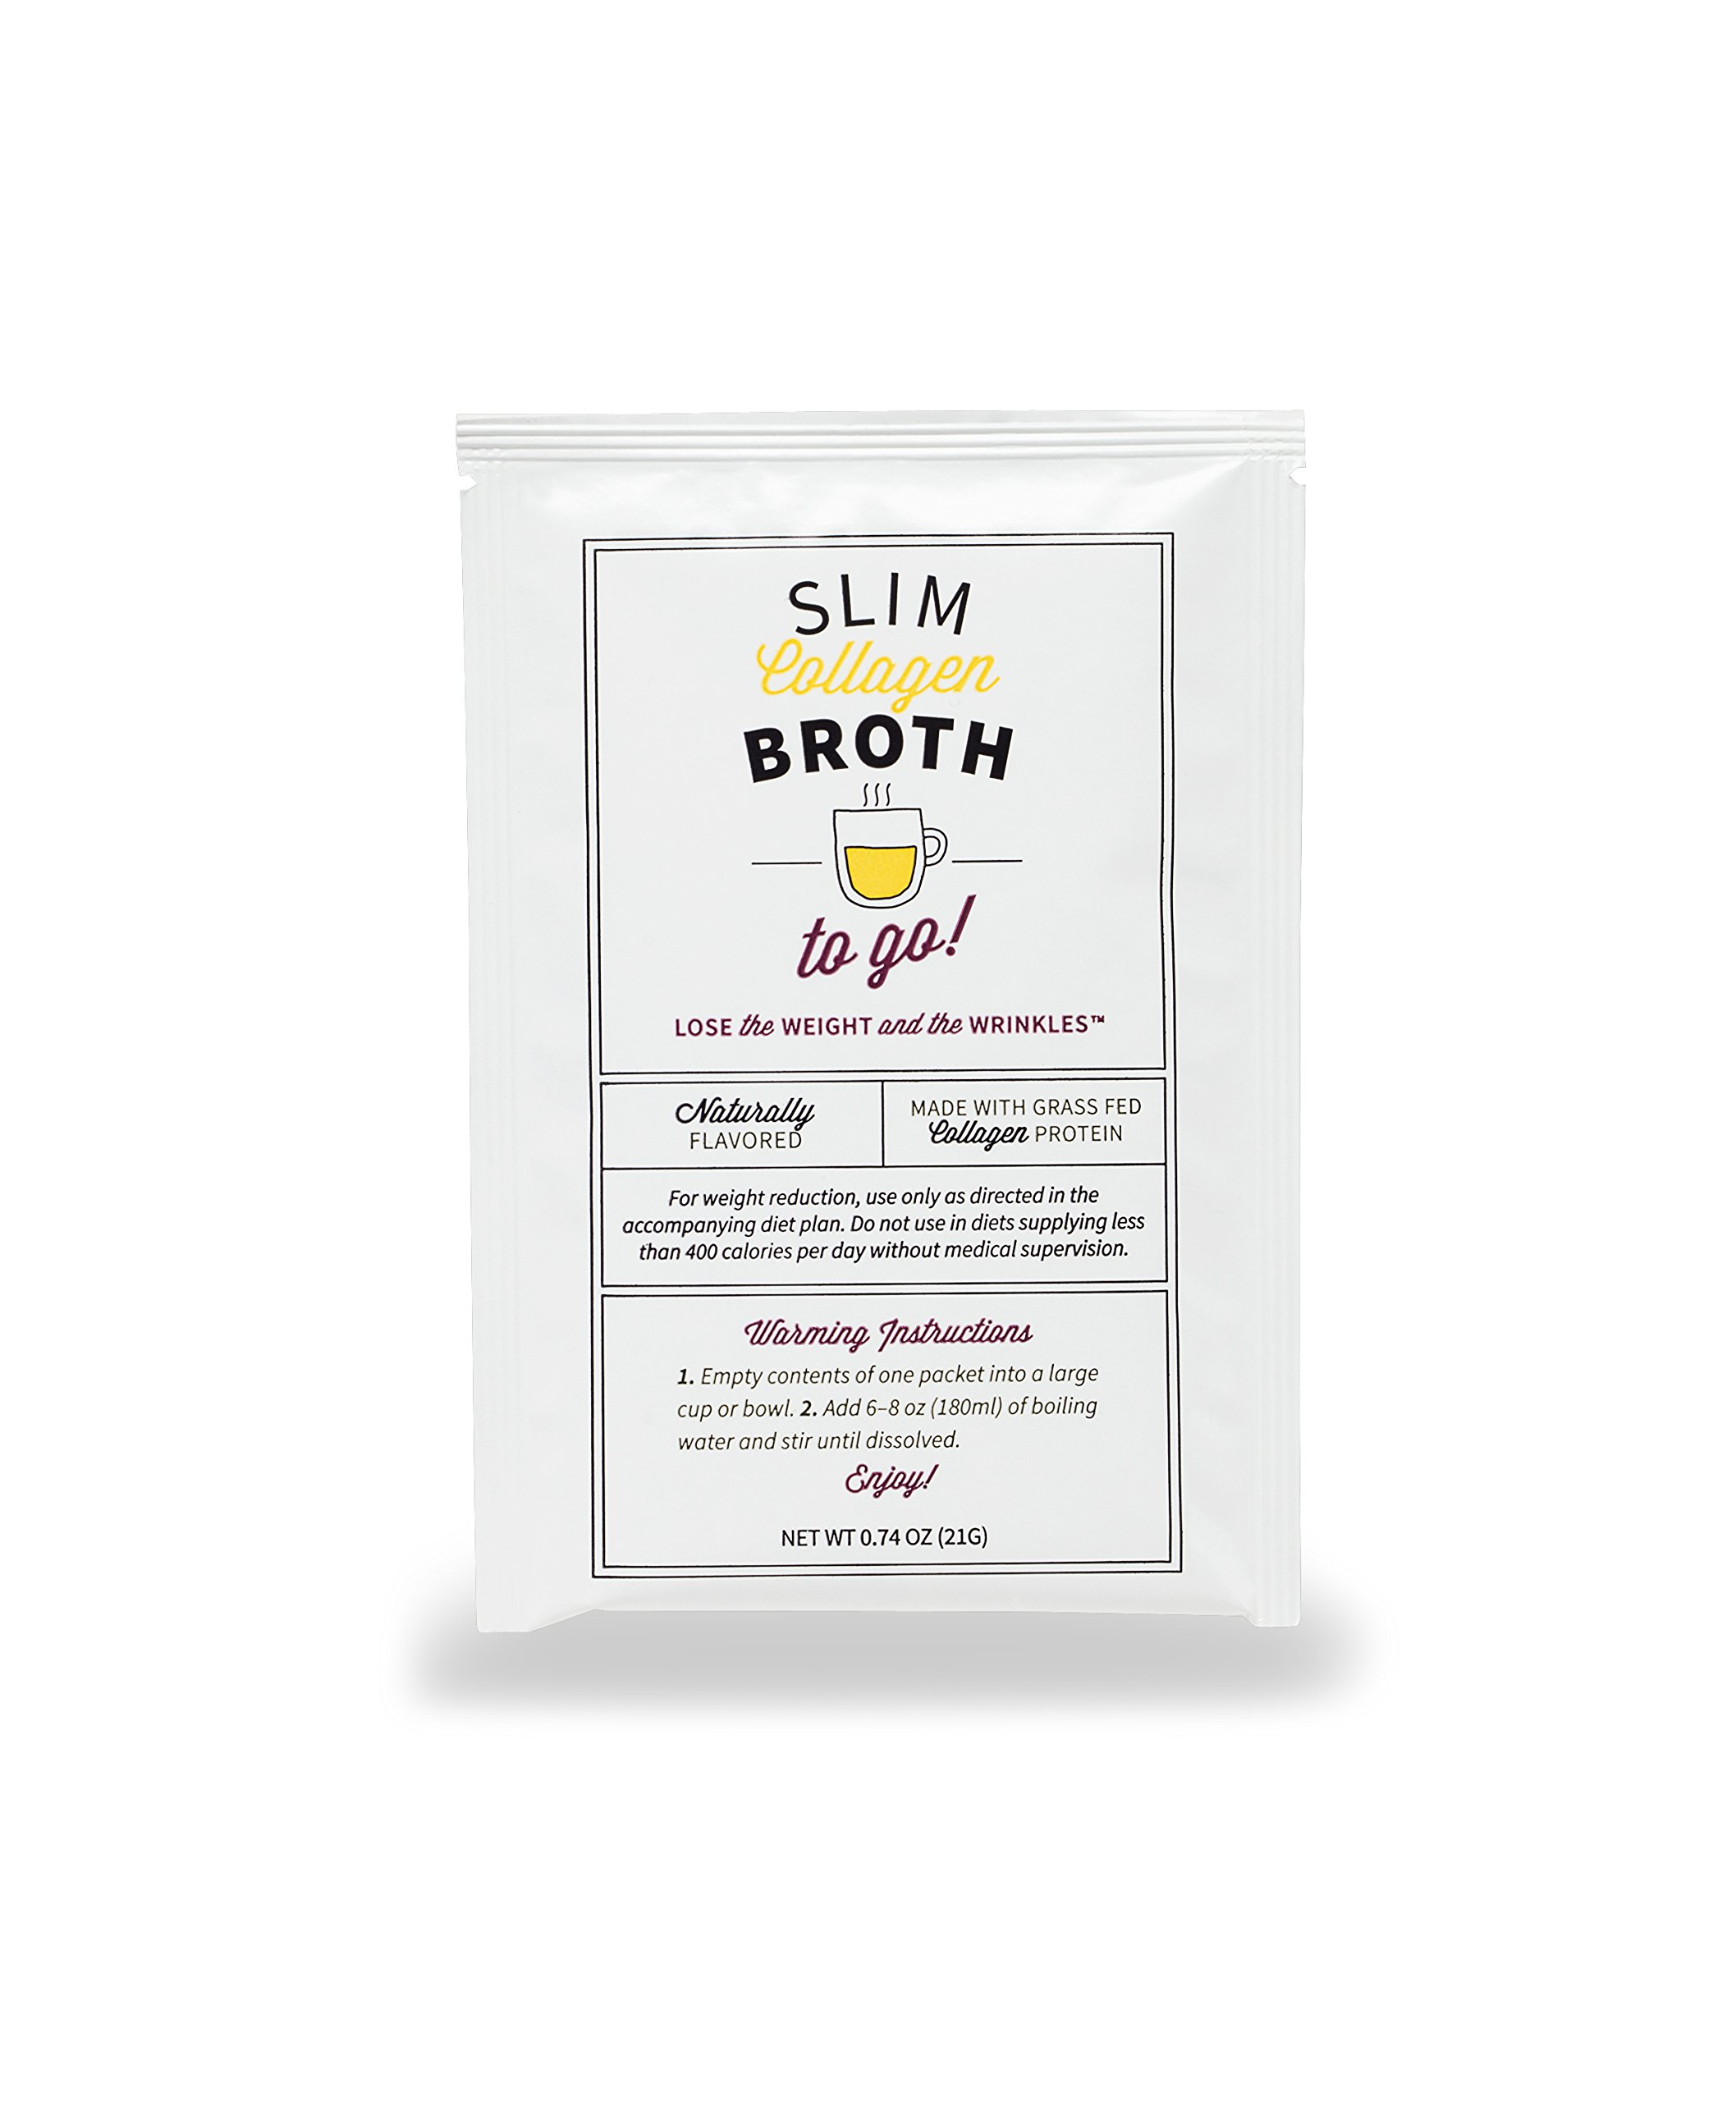 10-Day Belly Slimdown Bone Broth Collagen Pack by Dr. Kellyann - 10 Bone Broth Packets, 5 Keto Chocolate Almond & 5 Keto Vanilla Almond Protein Shakes - Weight loss, Keto, Paleo Diets (20 Servings) by Dr. Kellyann (Image #1)